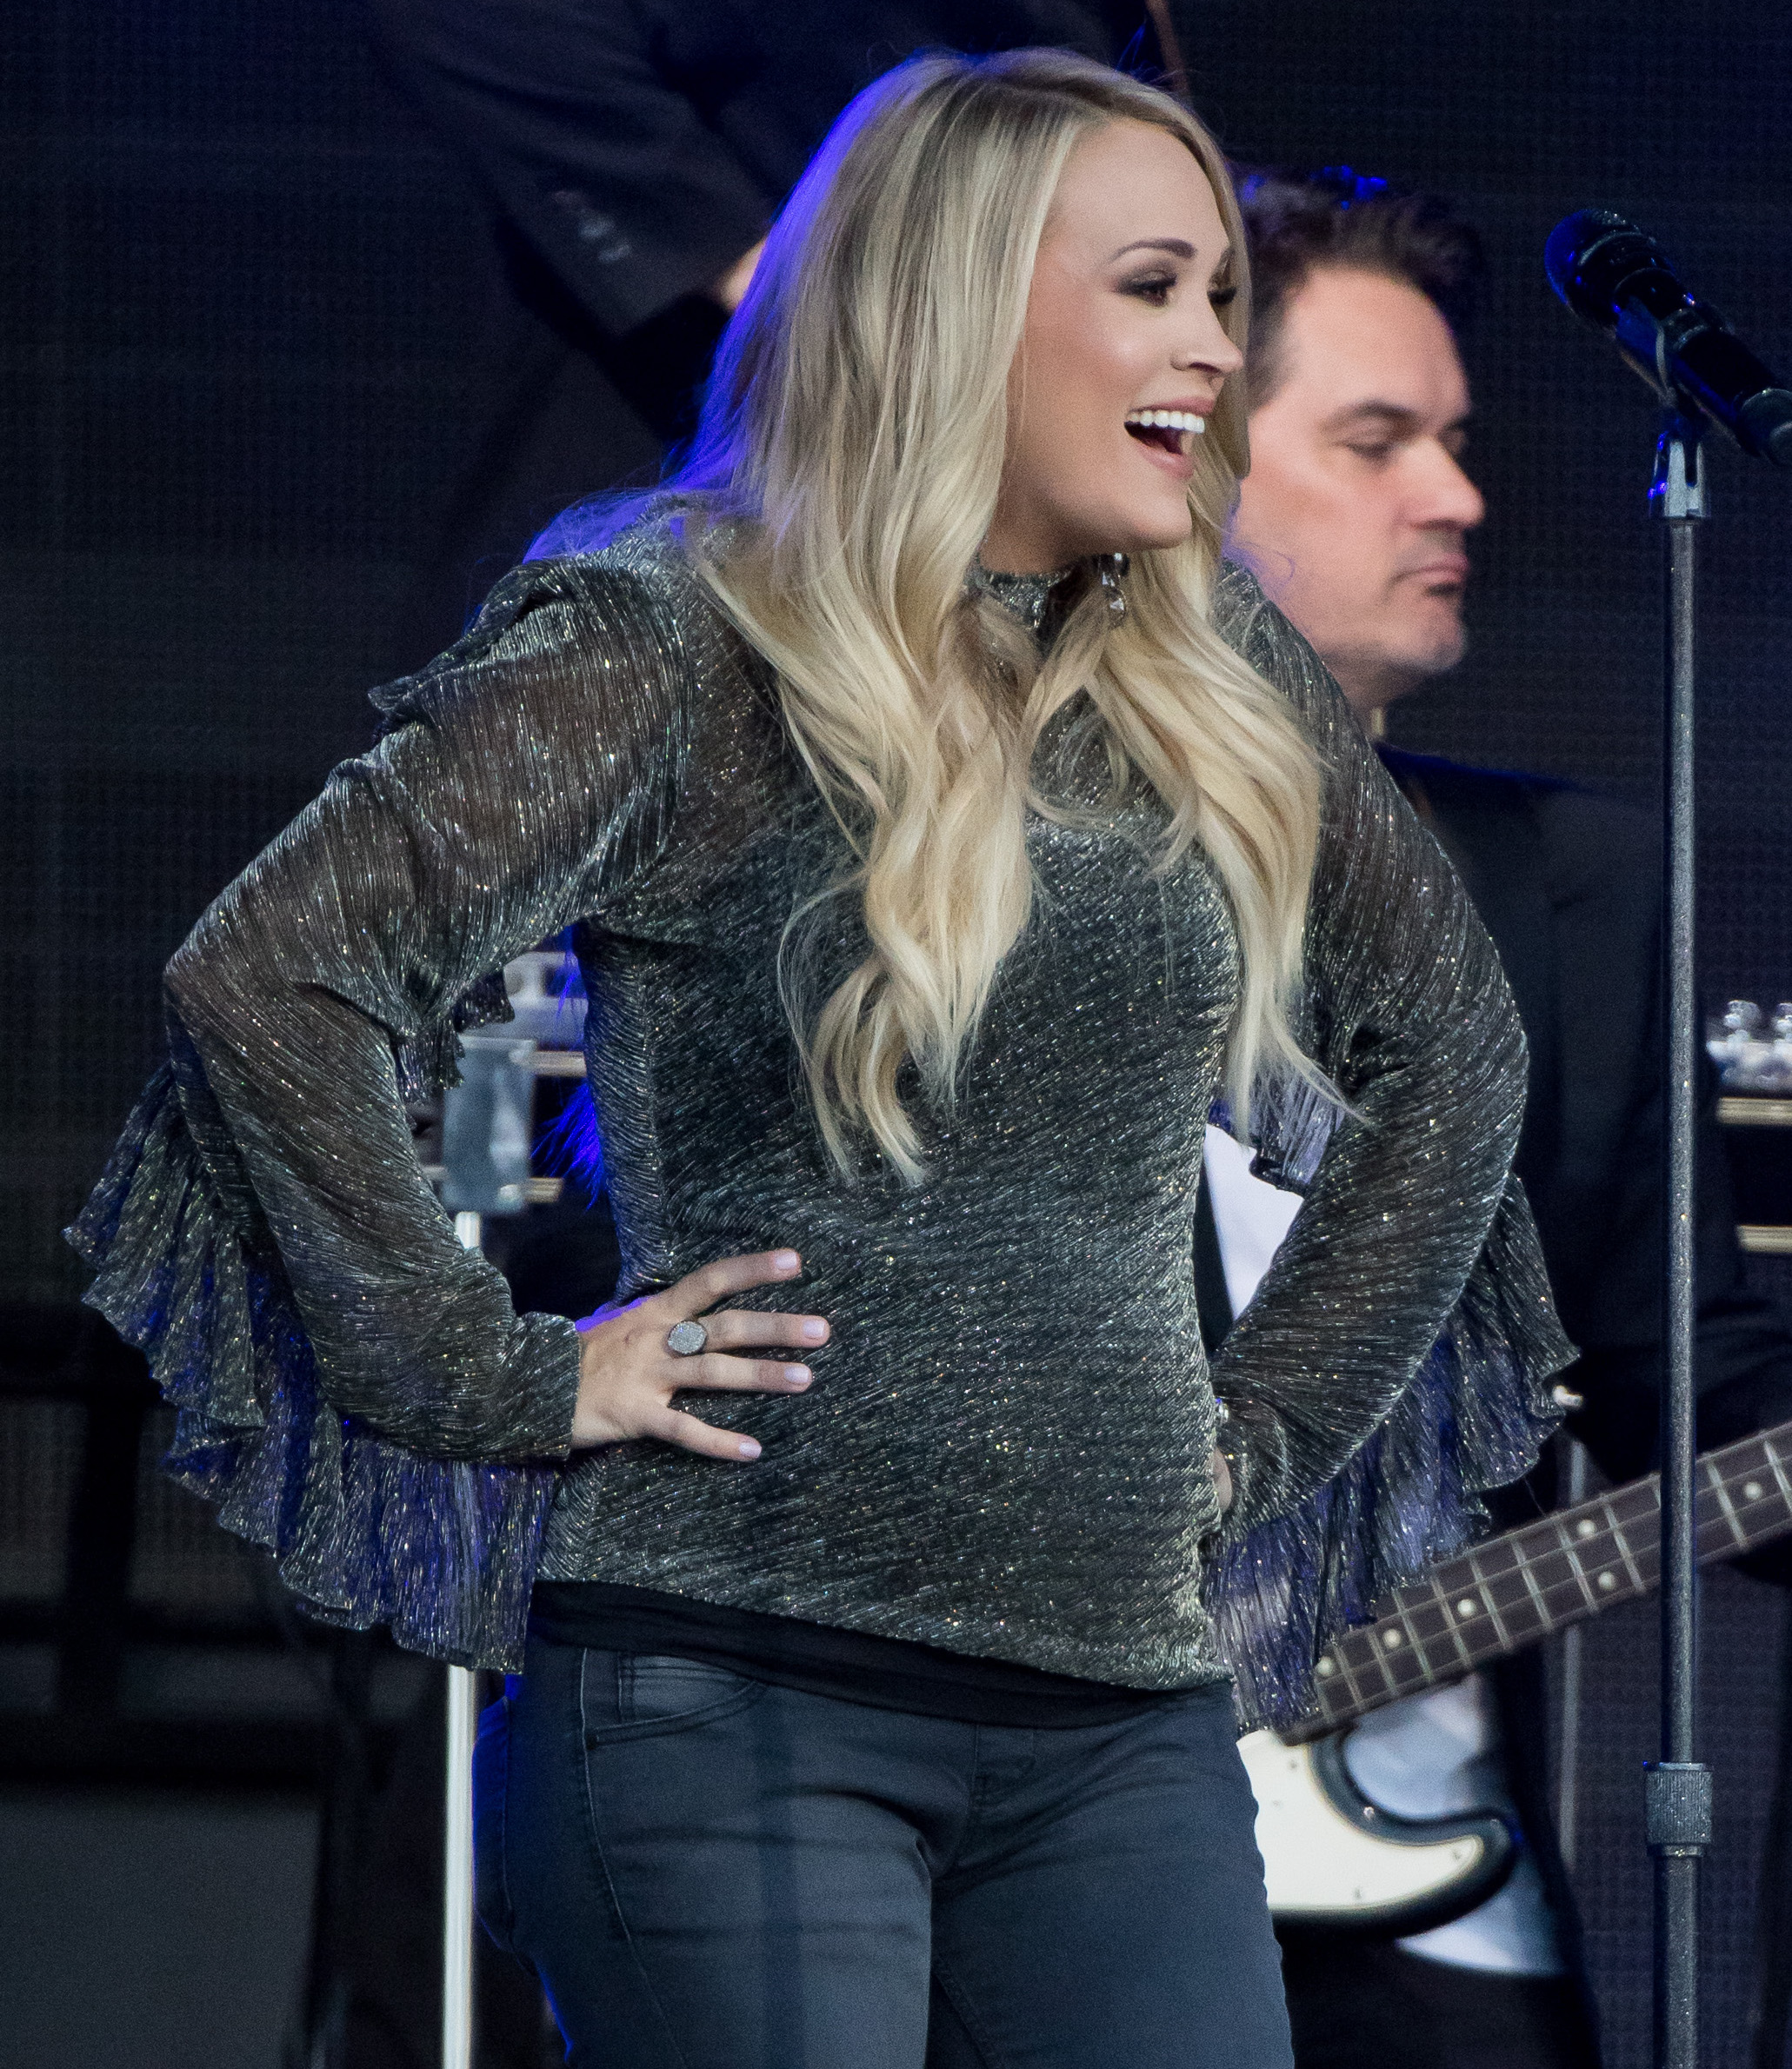 carry underwood performing on stage while pregnant